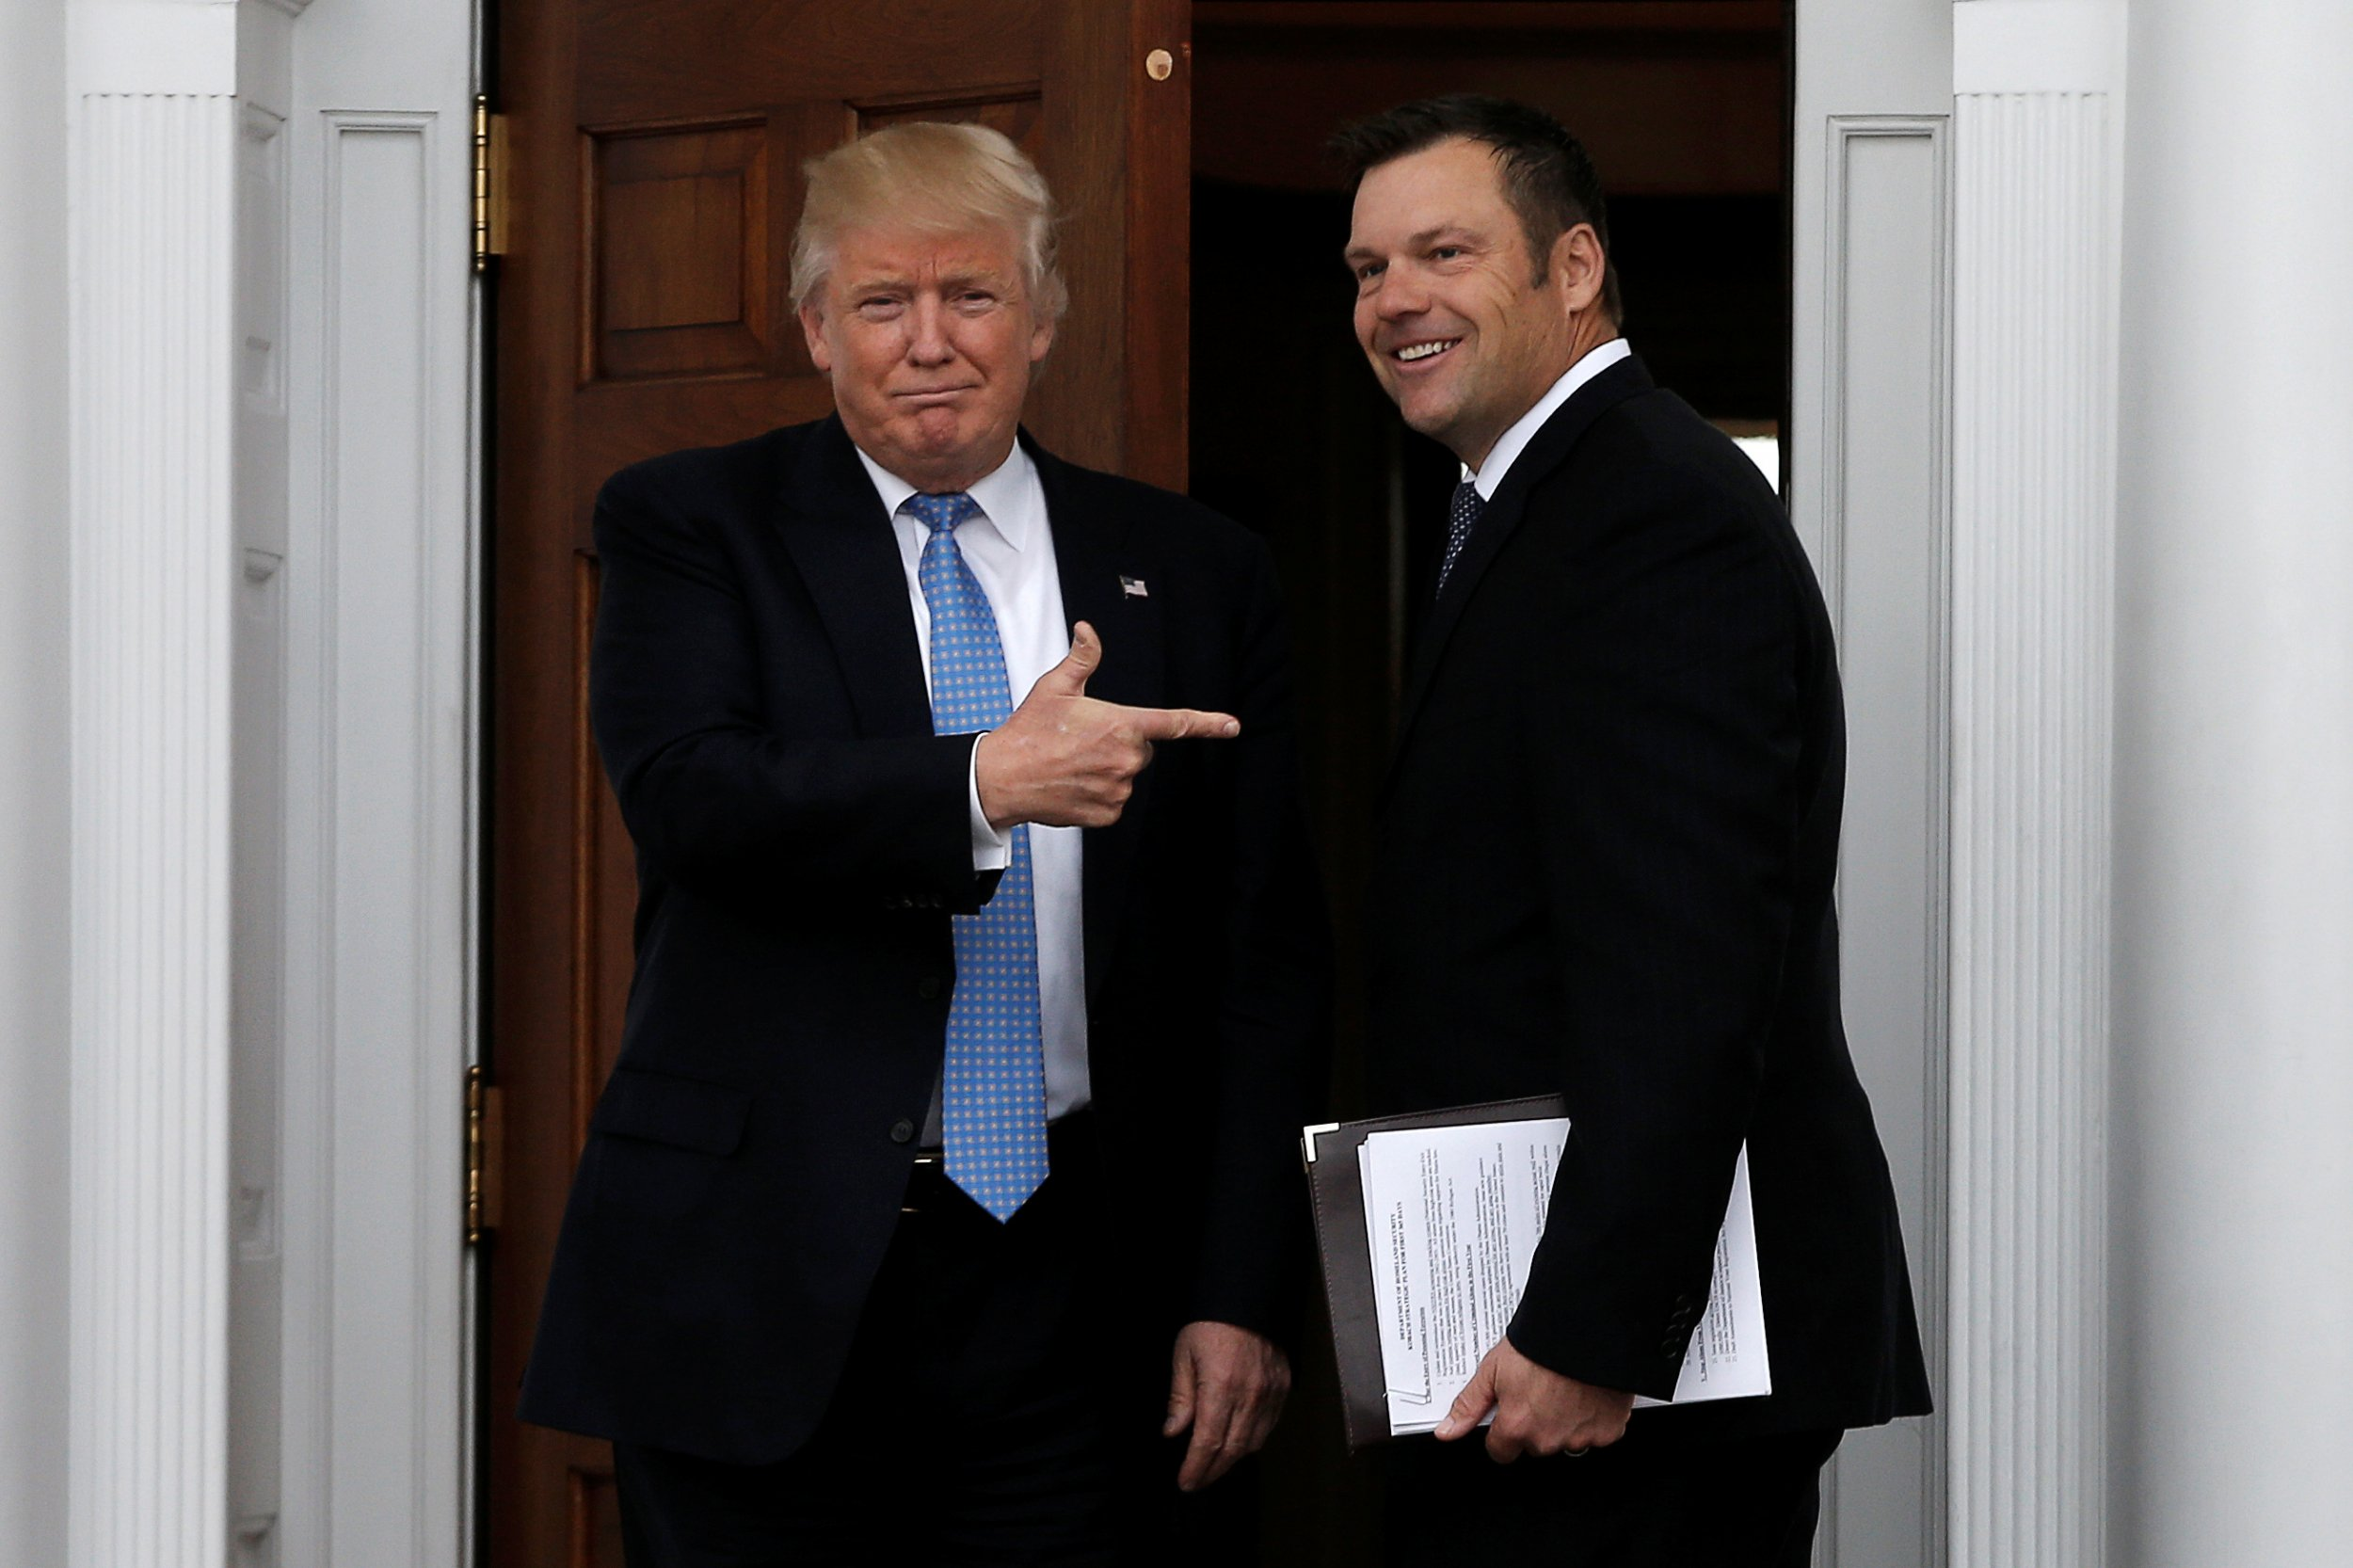 trump and kobach